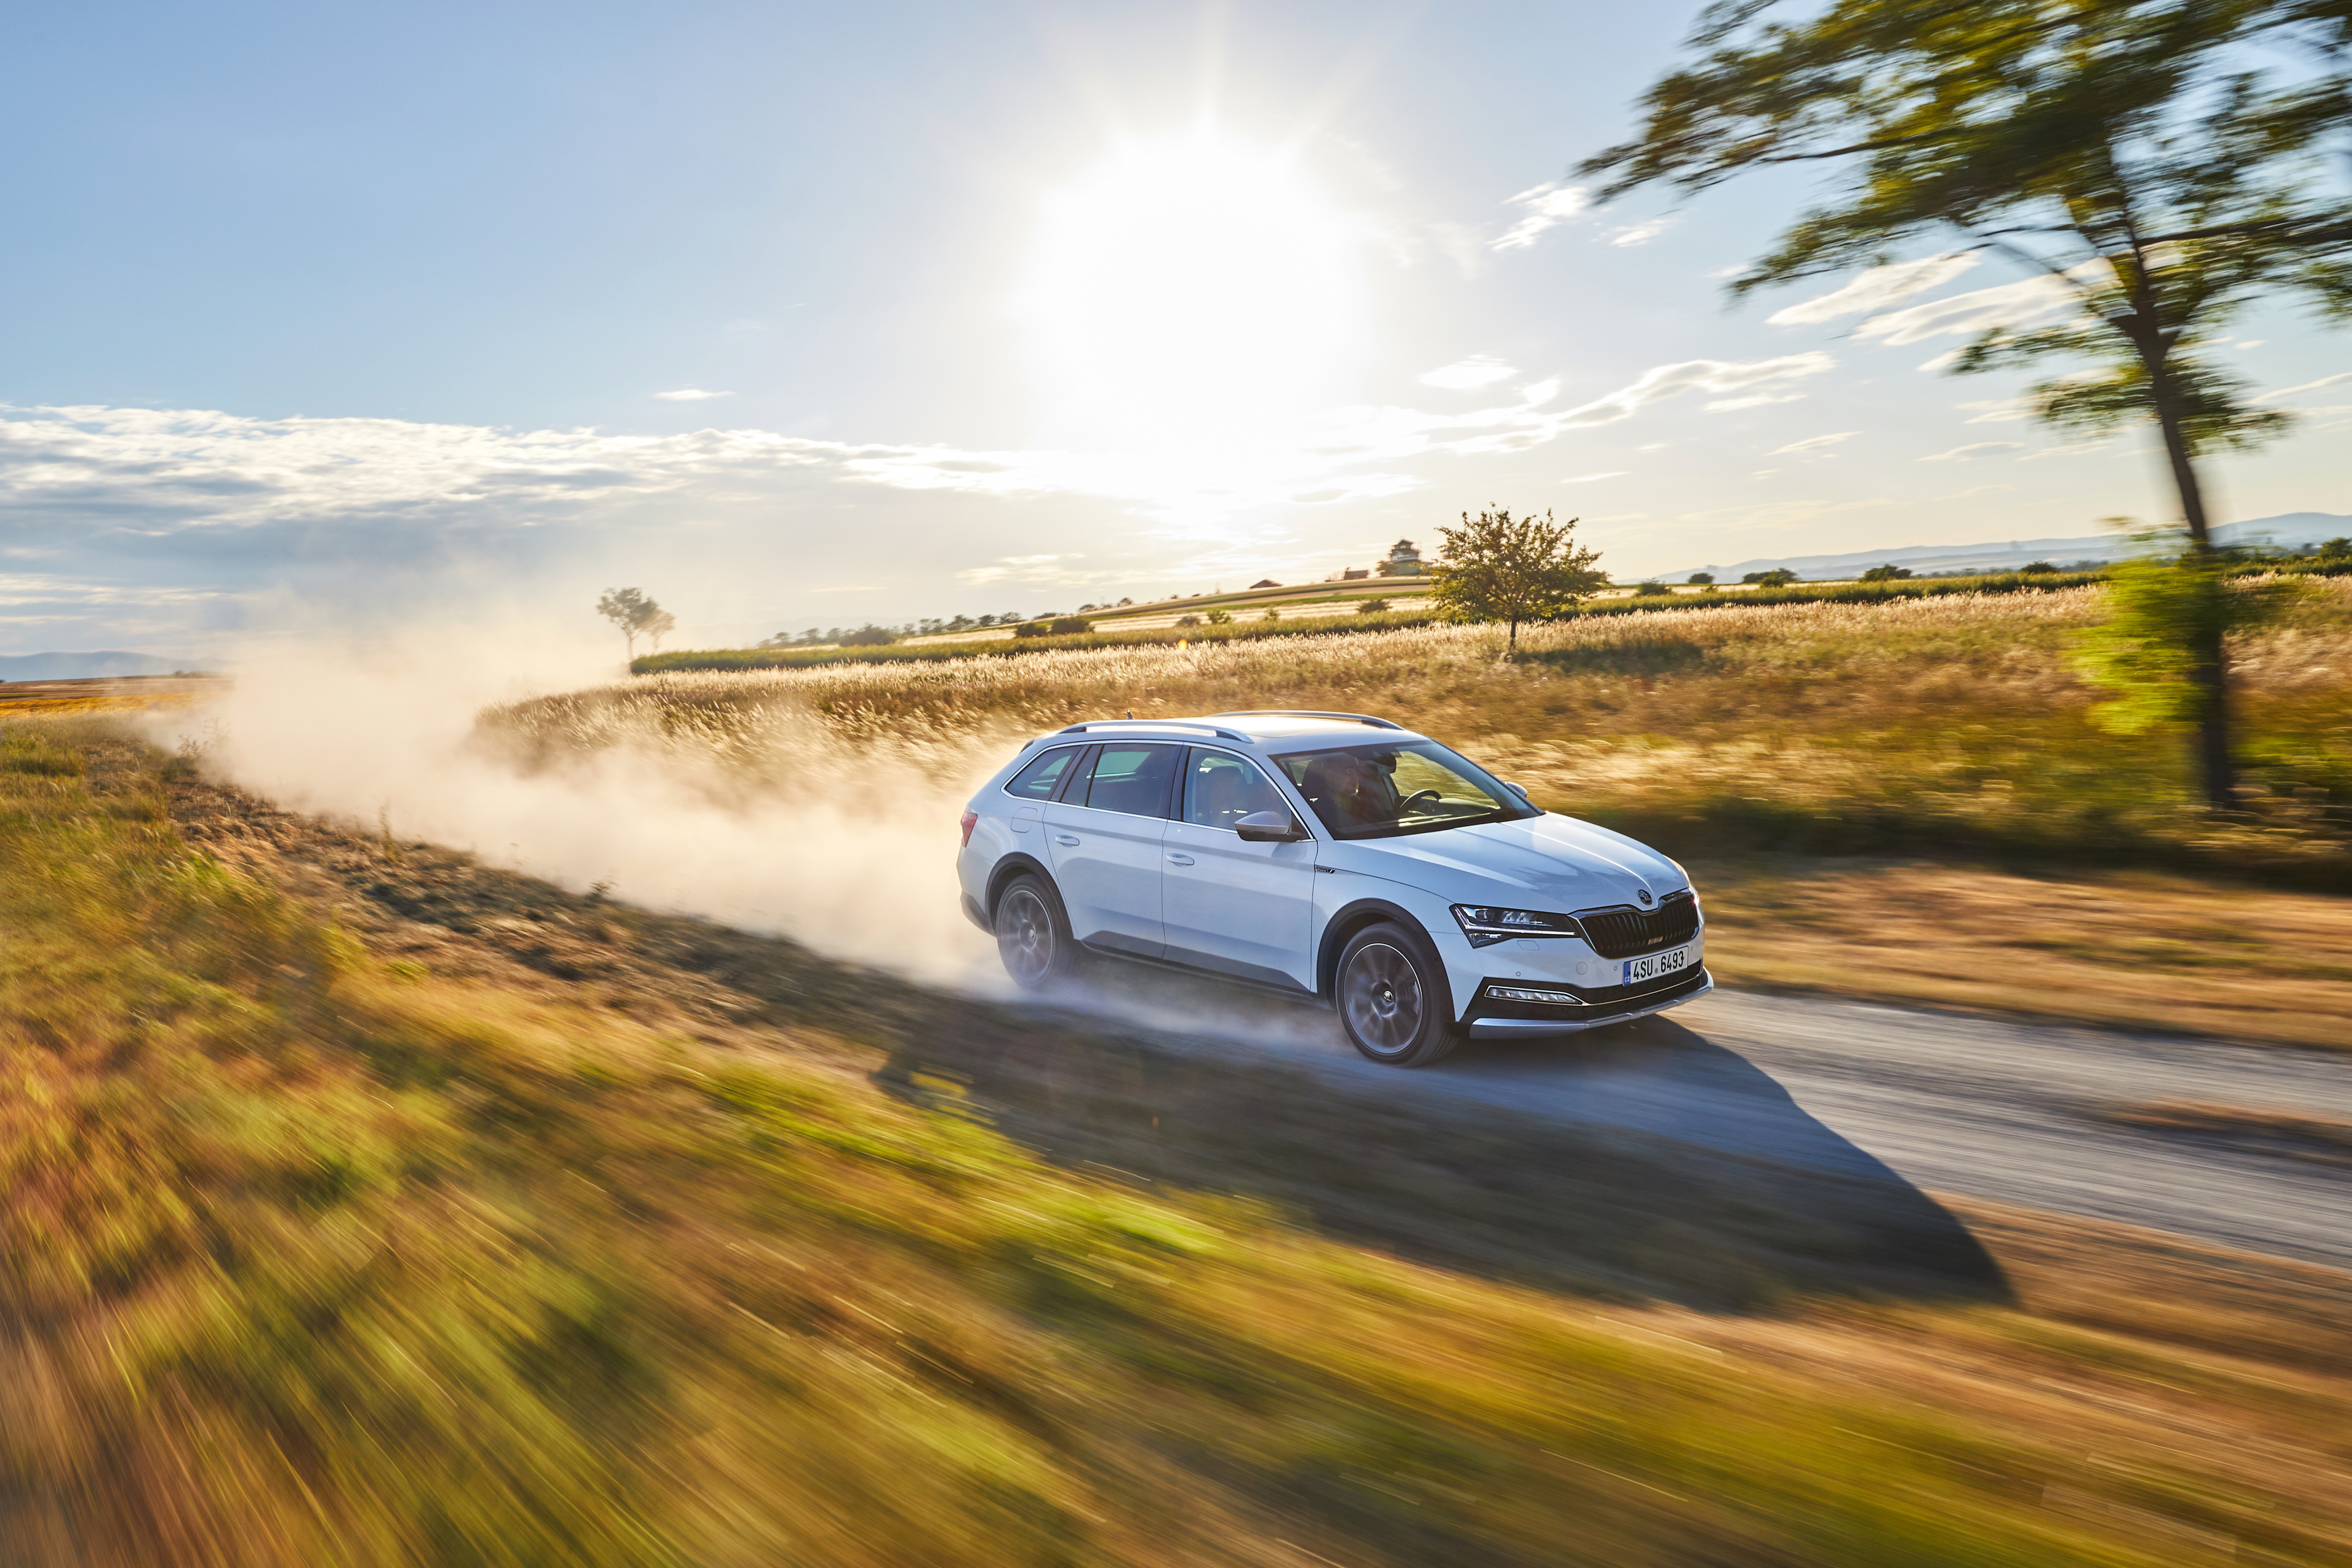 Countless new features introduced to SKODA portfolio for 2021 model year - Image 5